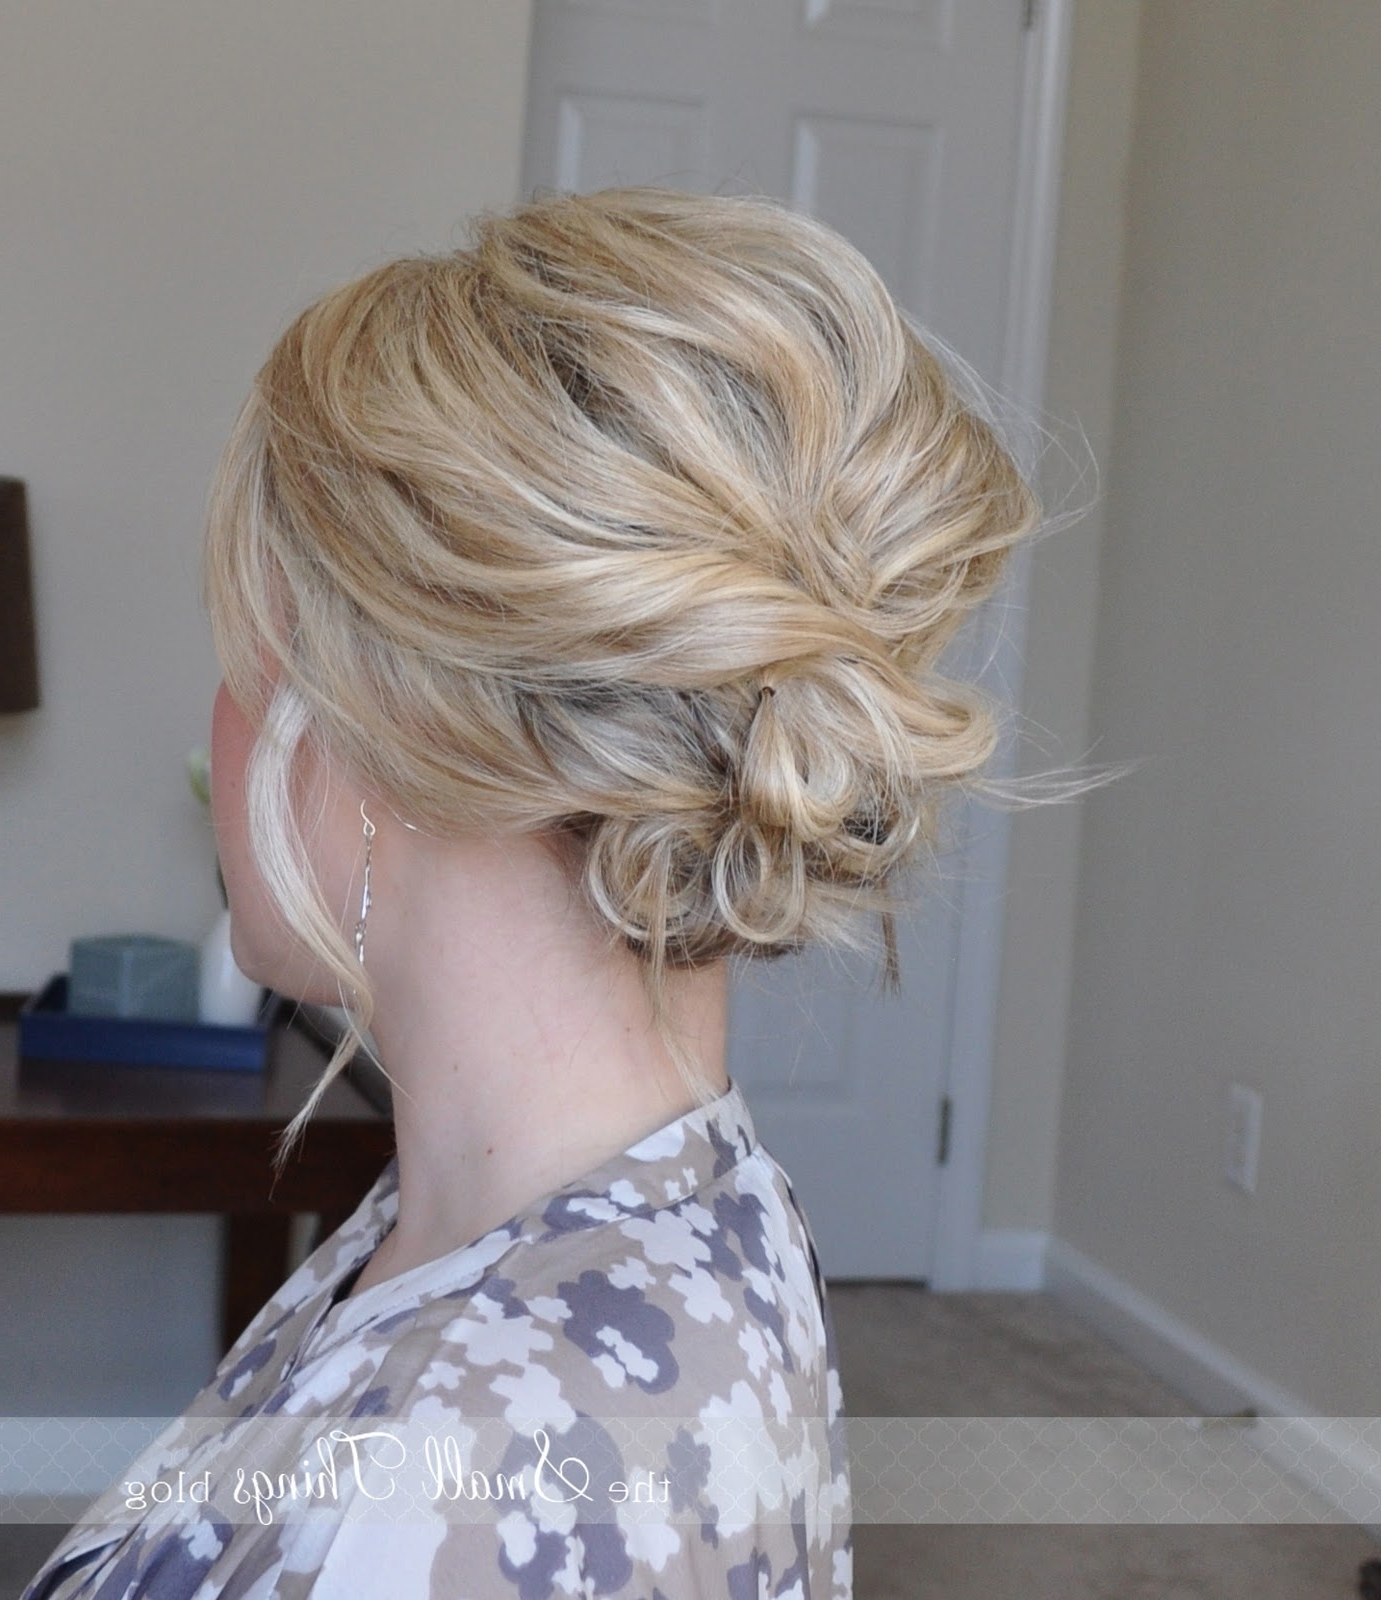 Current Wedding Hairstyles For Fine Hair Long Length Regarding Beach Wedding Hairstyles For Medium Length Hair – Hairstyle For (View 2 of 15)